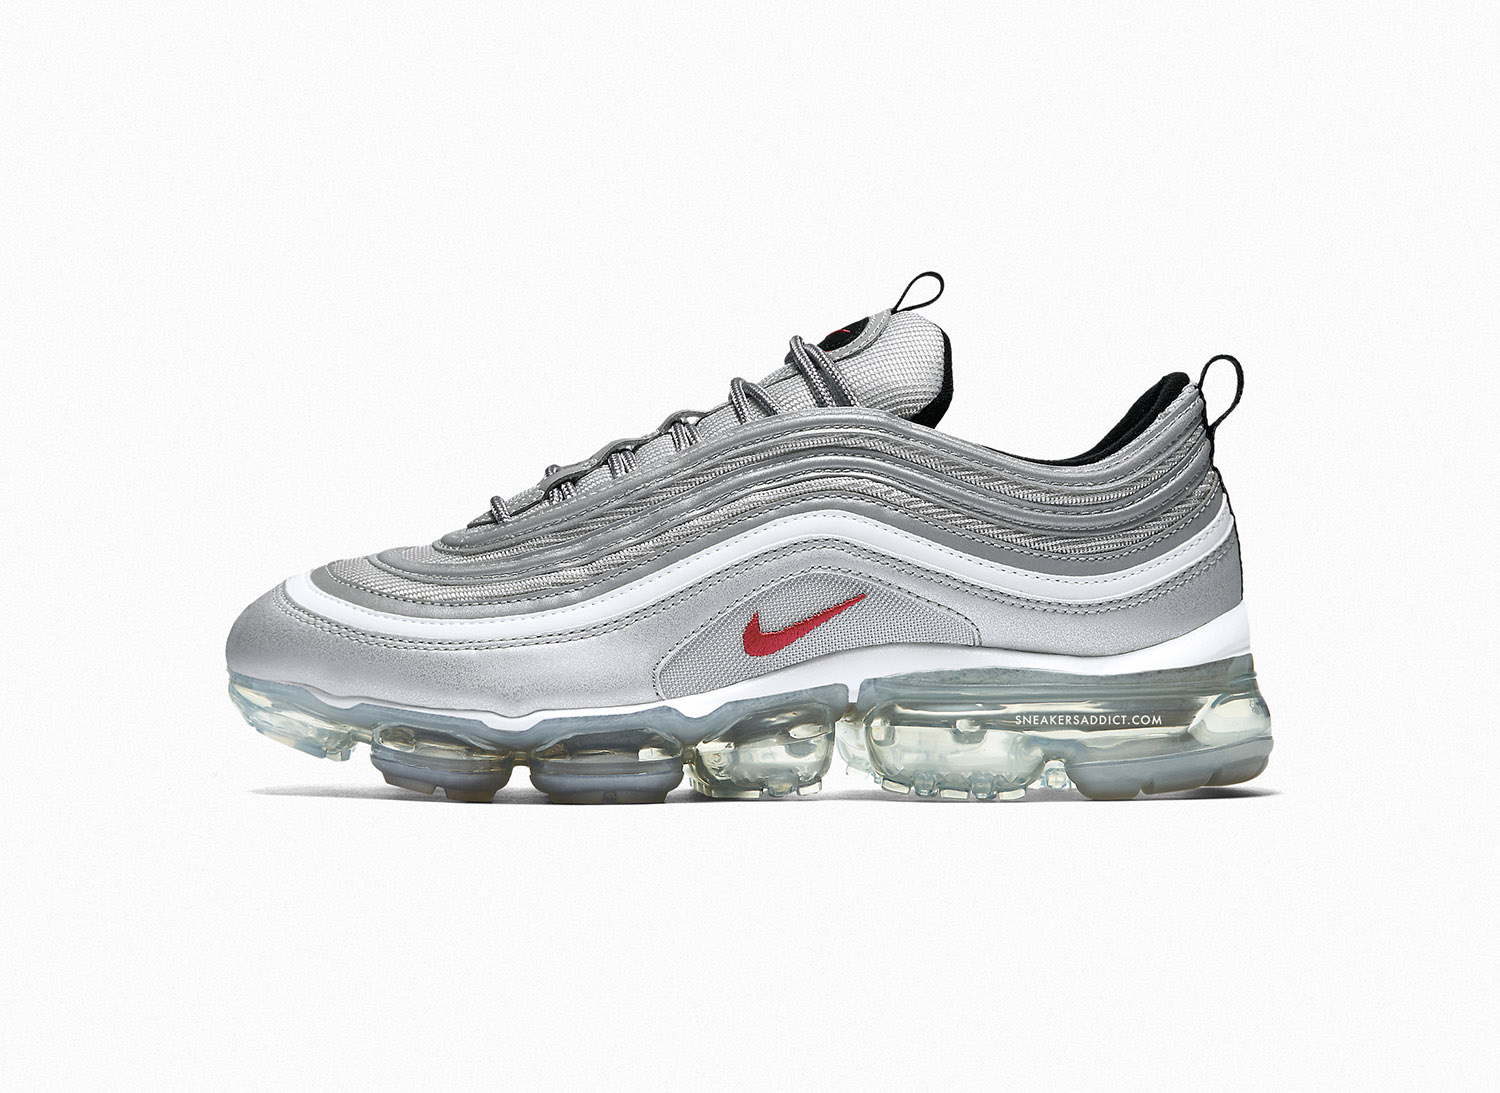 nike air vapormax 97 silver Wet Grass